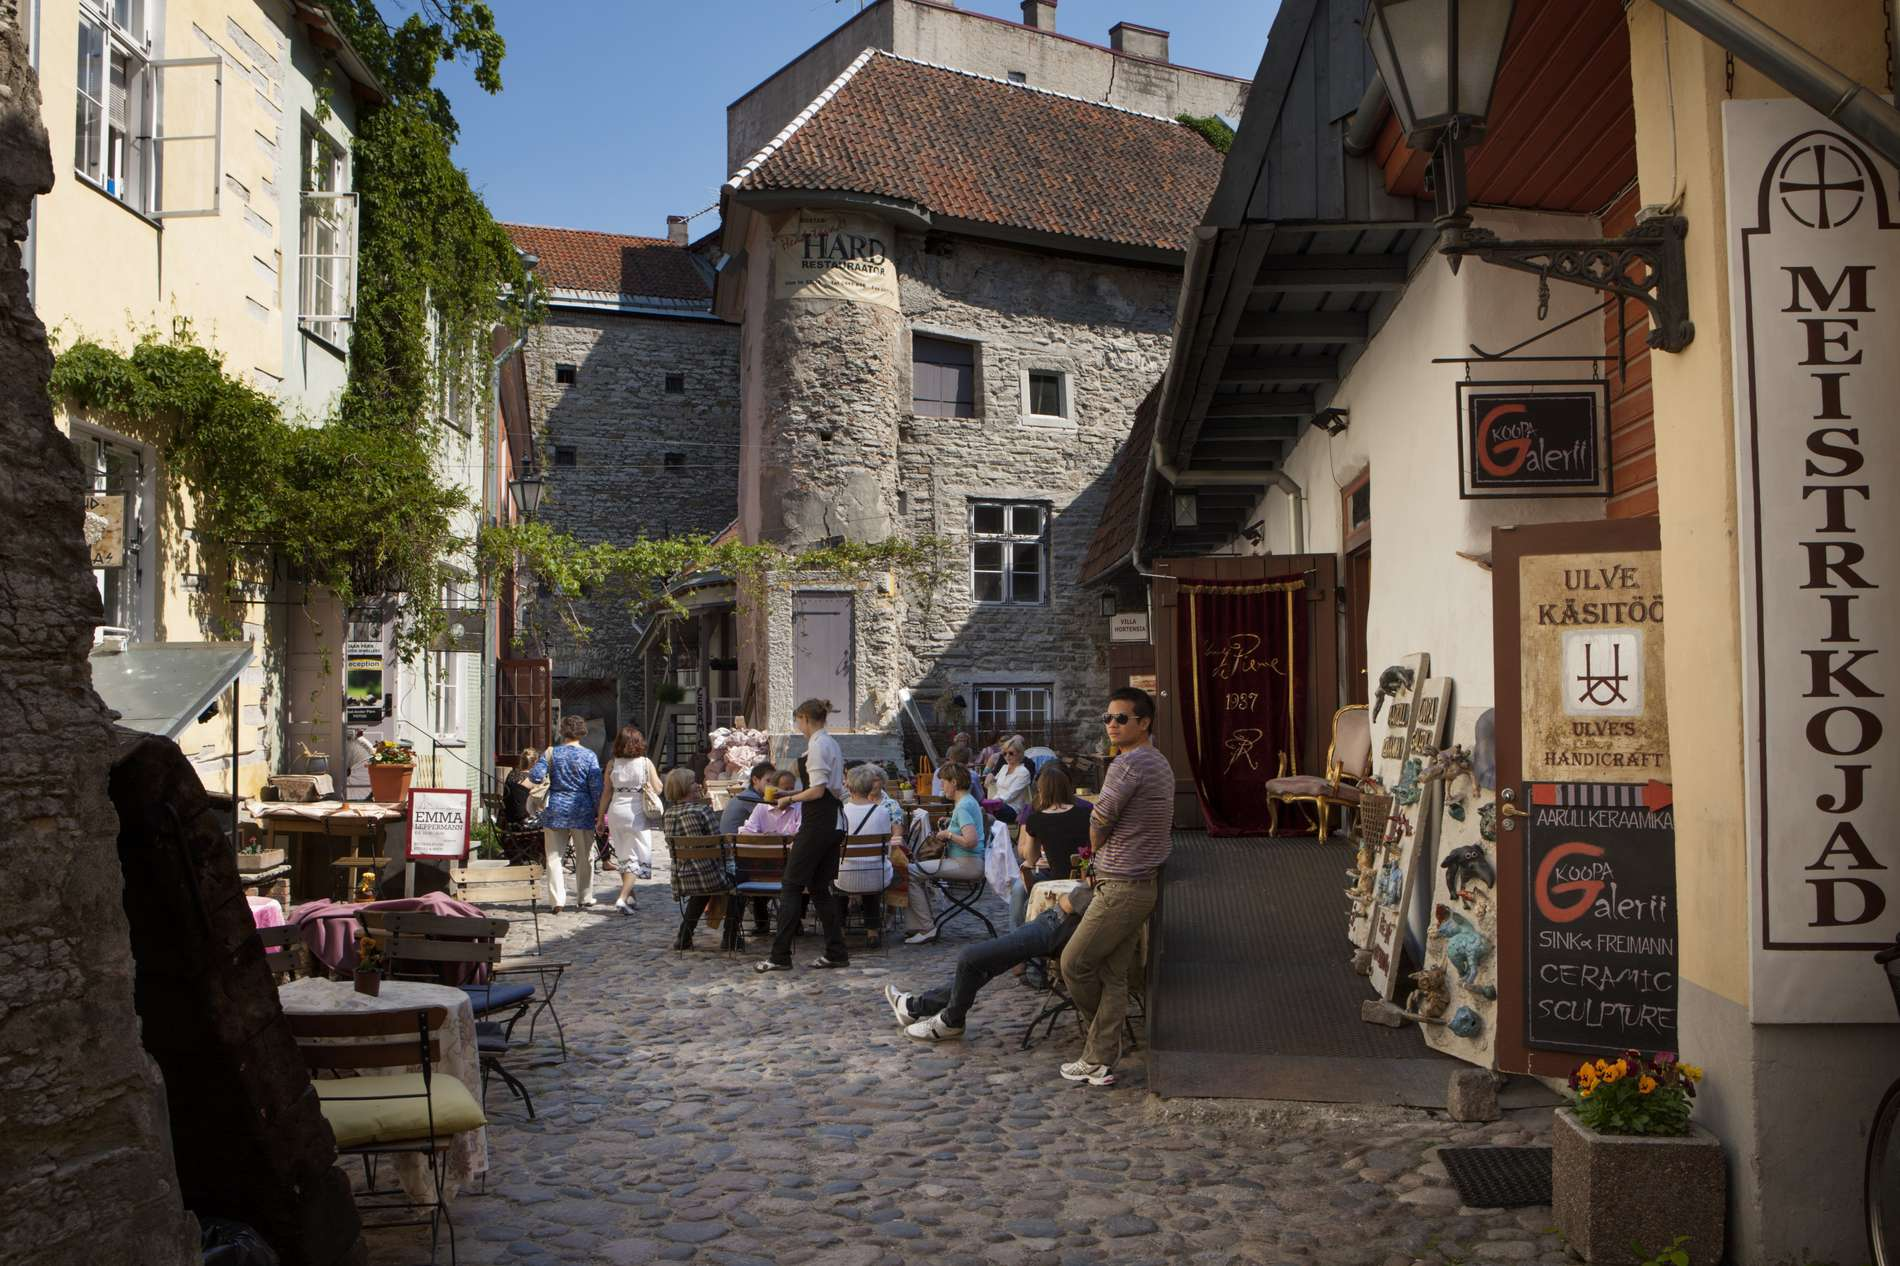 View to the Masters' Courtyard in the Old Town of Tallinn, Estonia.